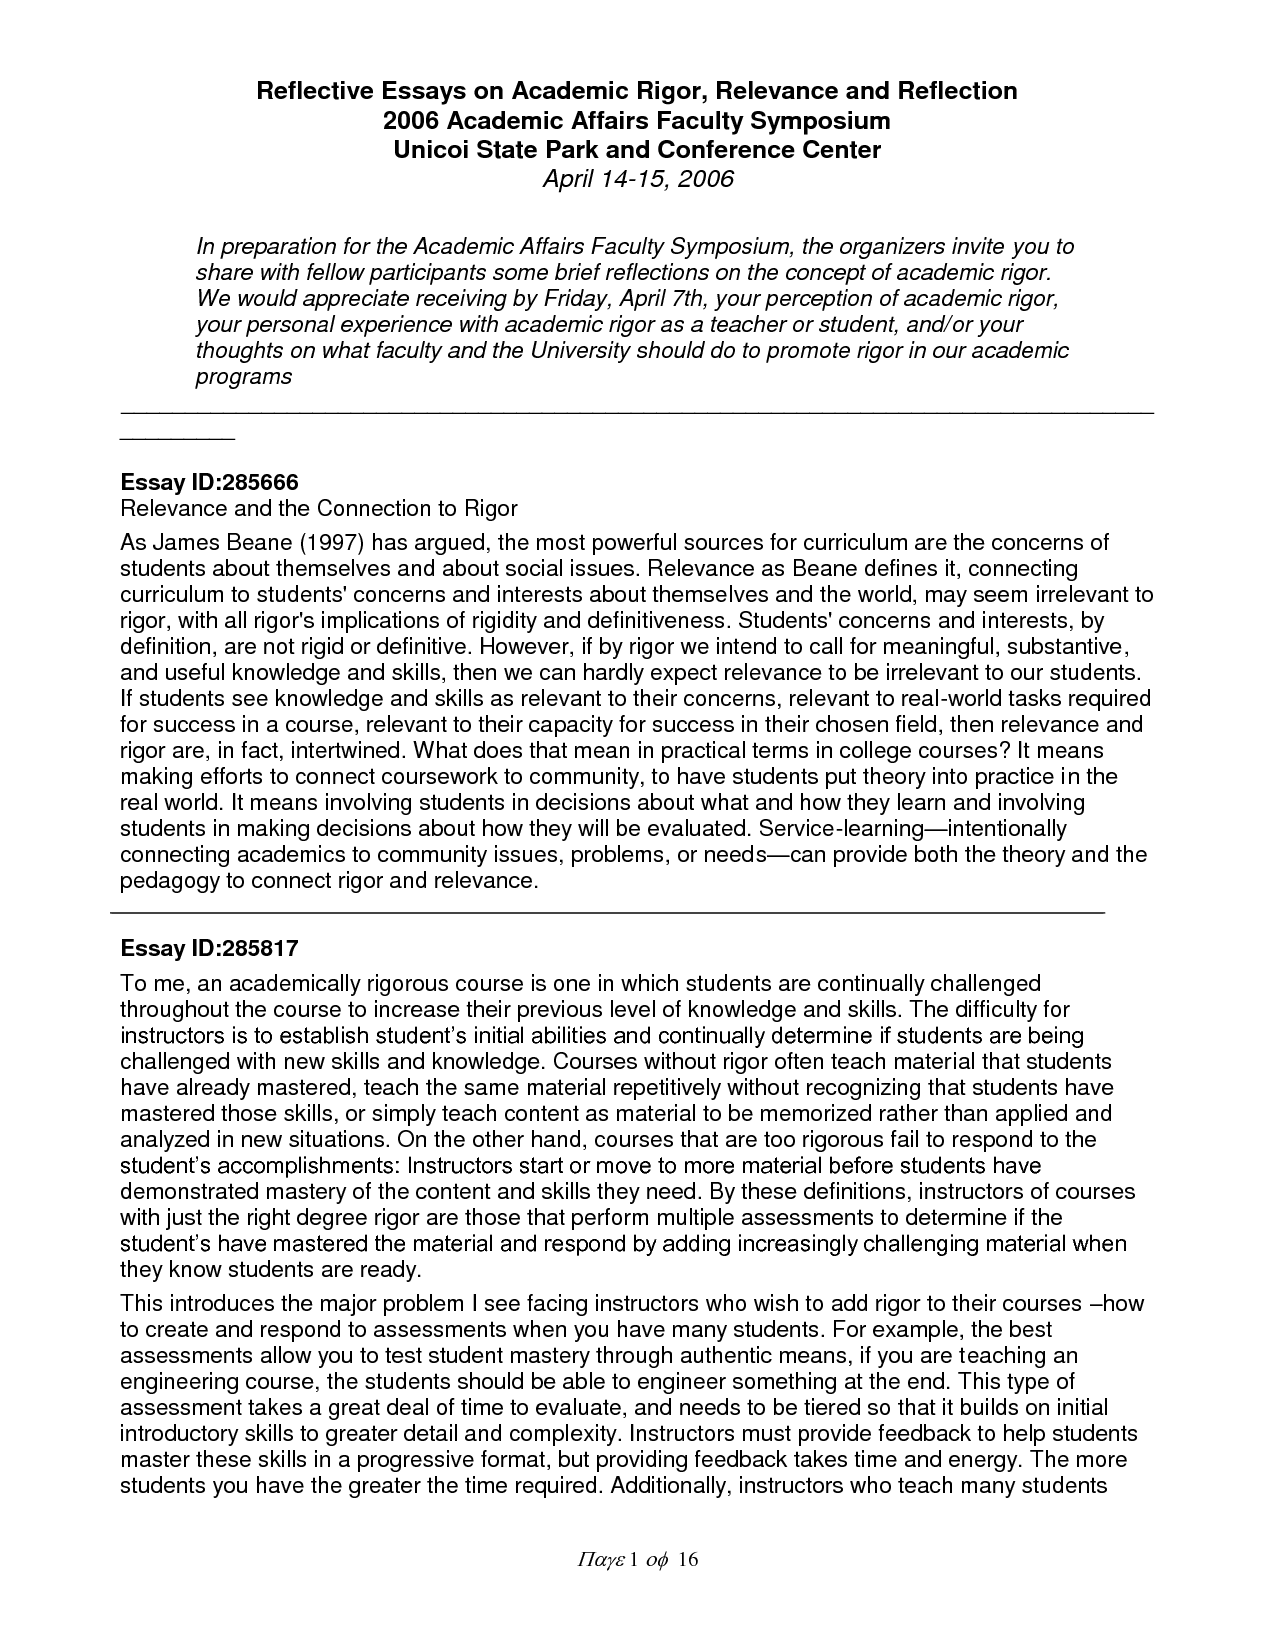 006 Academic Essays Essay Example Writing Examples Good Cover Letter Samples How To Write An Youtube Coles Thecolossus Co Throu Sample Pdf Conclusion Ppt Introduction Ielts Plan Magnificent Database Full